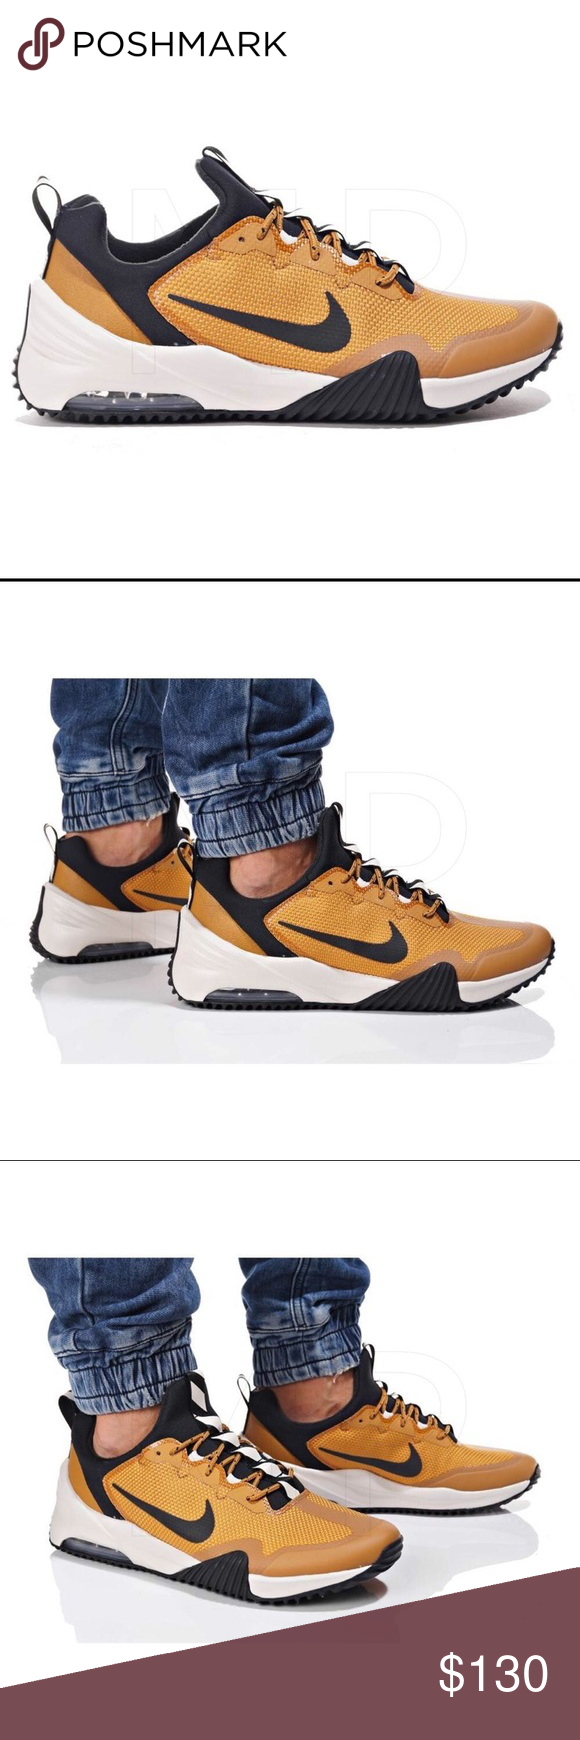 NEW NIKE AIR MAX GRIGORA   BRAND NEW WITH NO BOX     BEST PRICE ONLINE    -AUTHENTIC NIKE AIR MAX GRIGORA -WHEAT BLACK -SIZE 10 Nike Shoes Sneakers 32f251ece